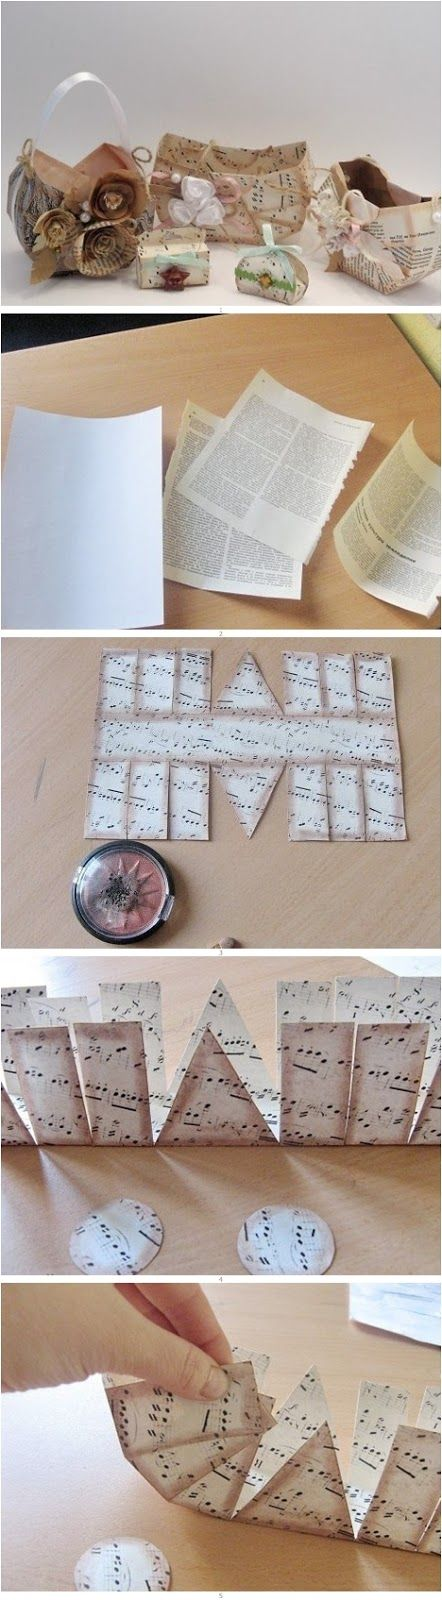 2 Cool DIY Projects Made With Old Books